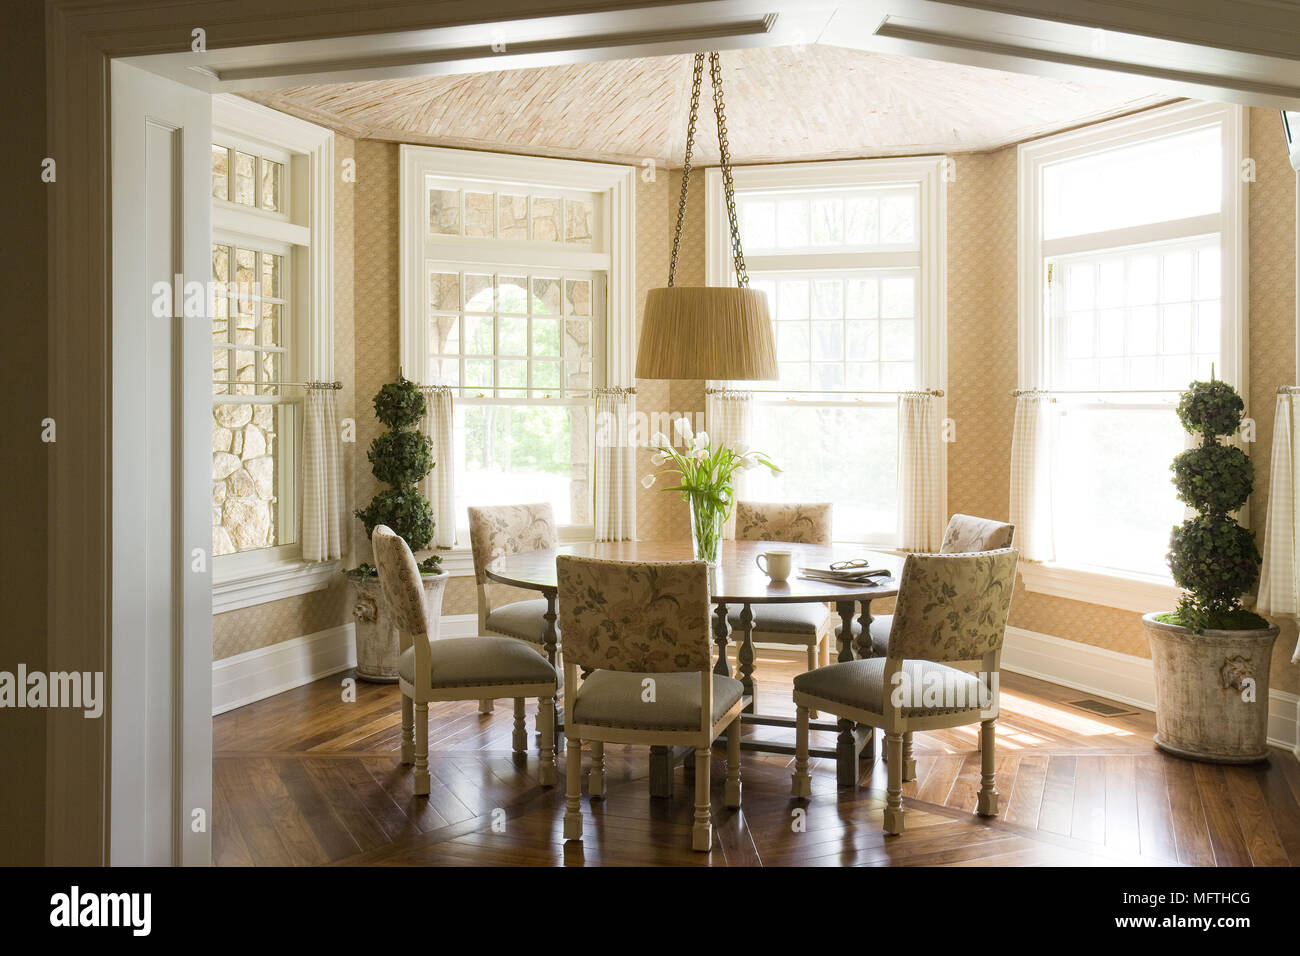 Pendant light above round table in traditional style dining room ...